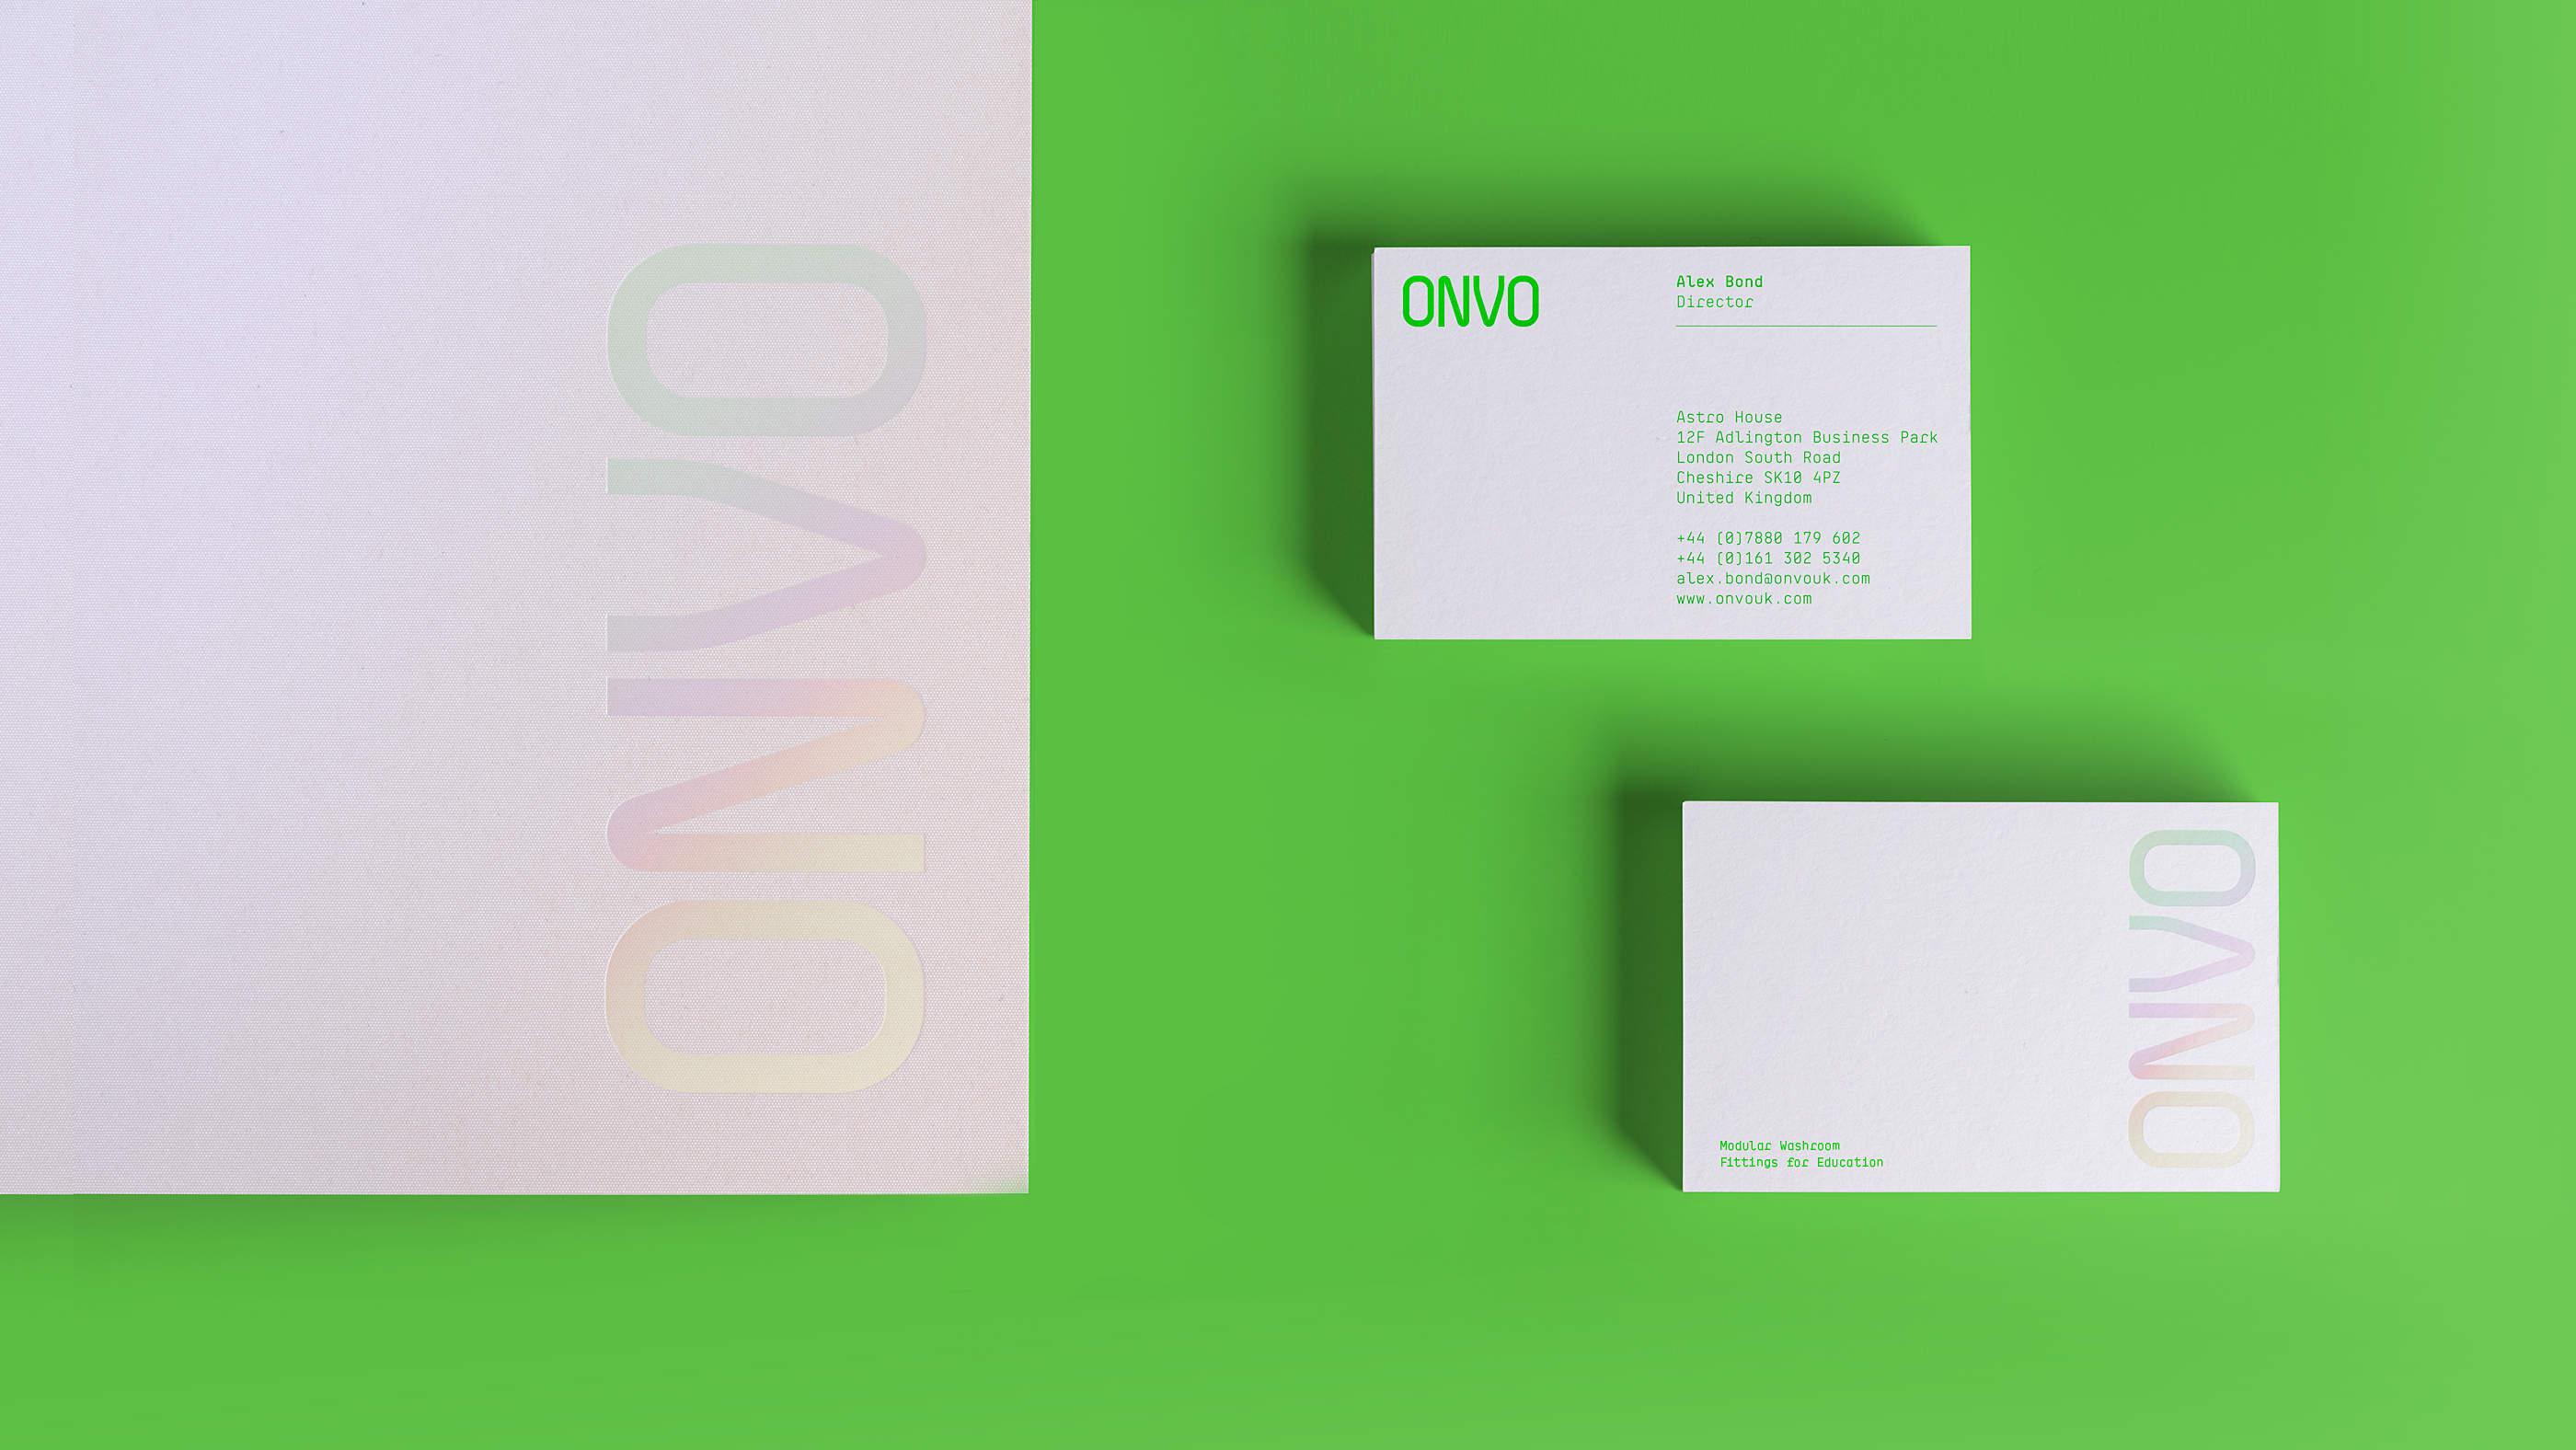 ONVO Washroom fittings branding - brochure cover and stationery